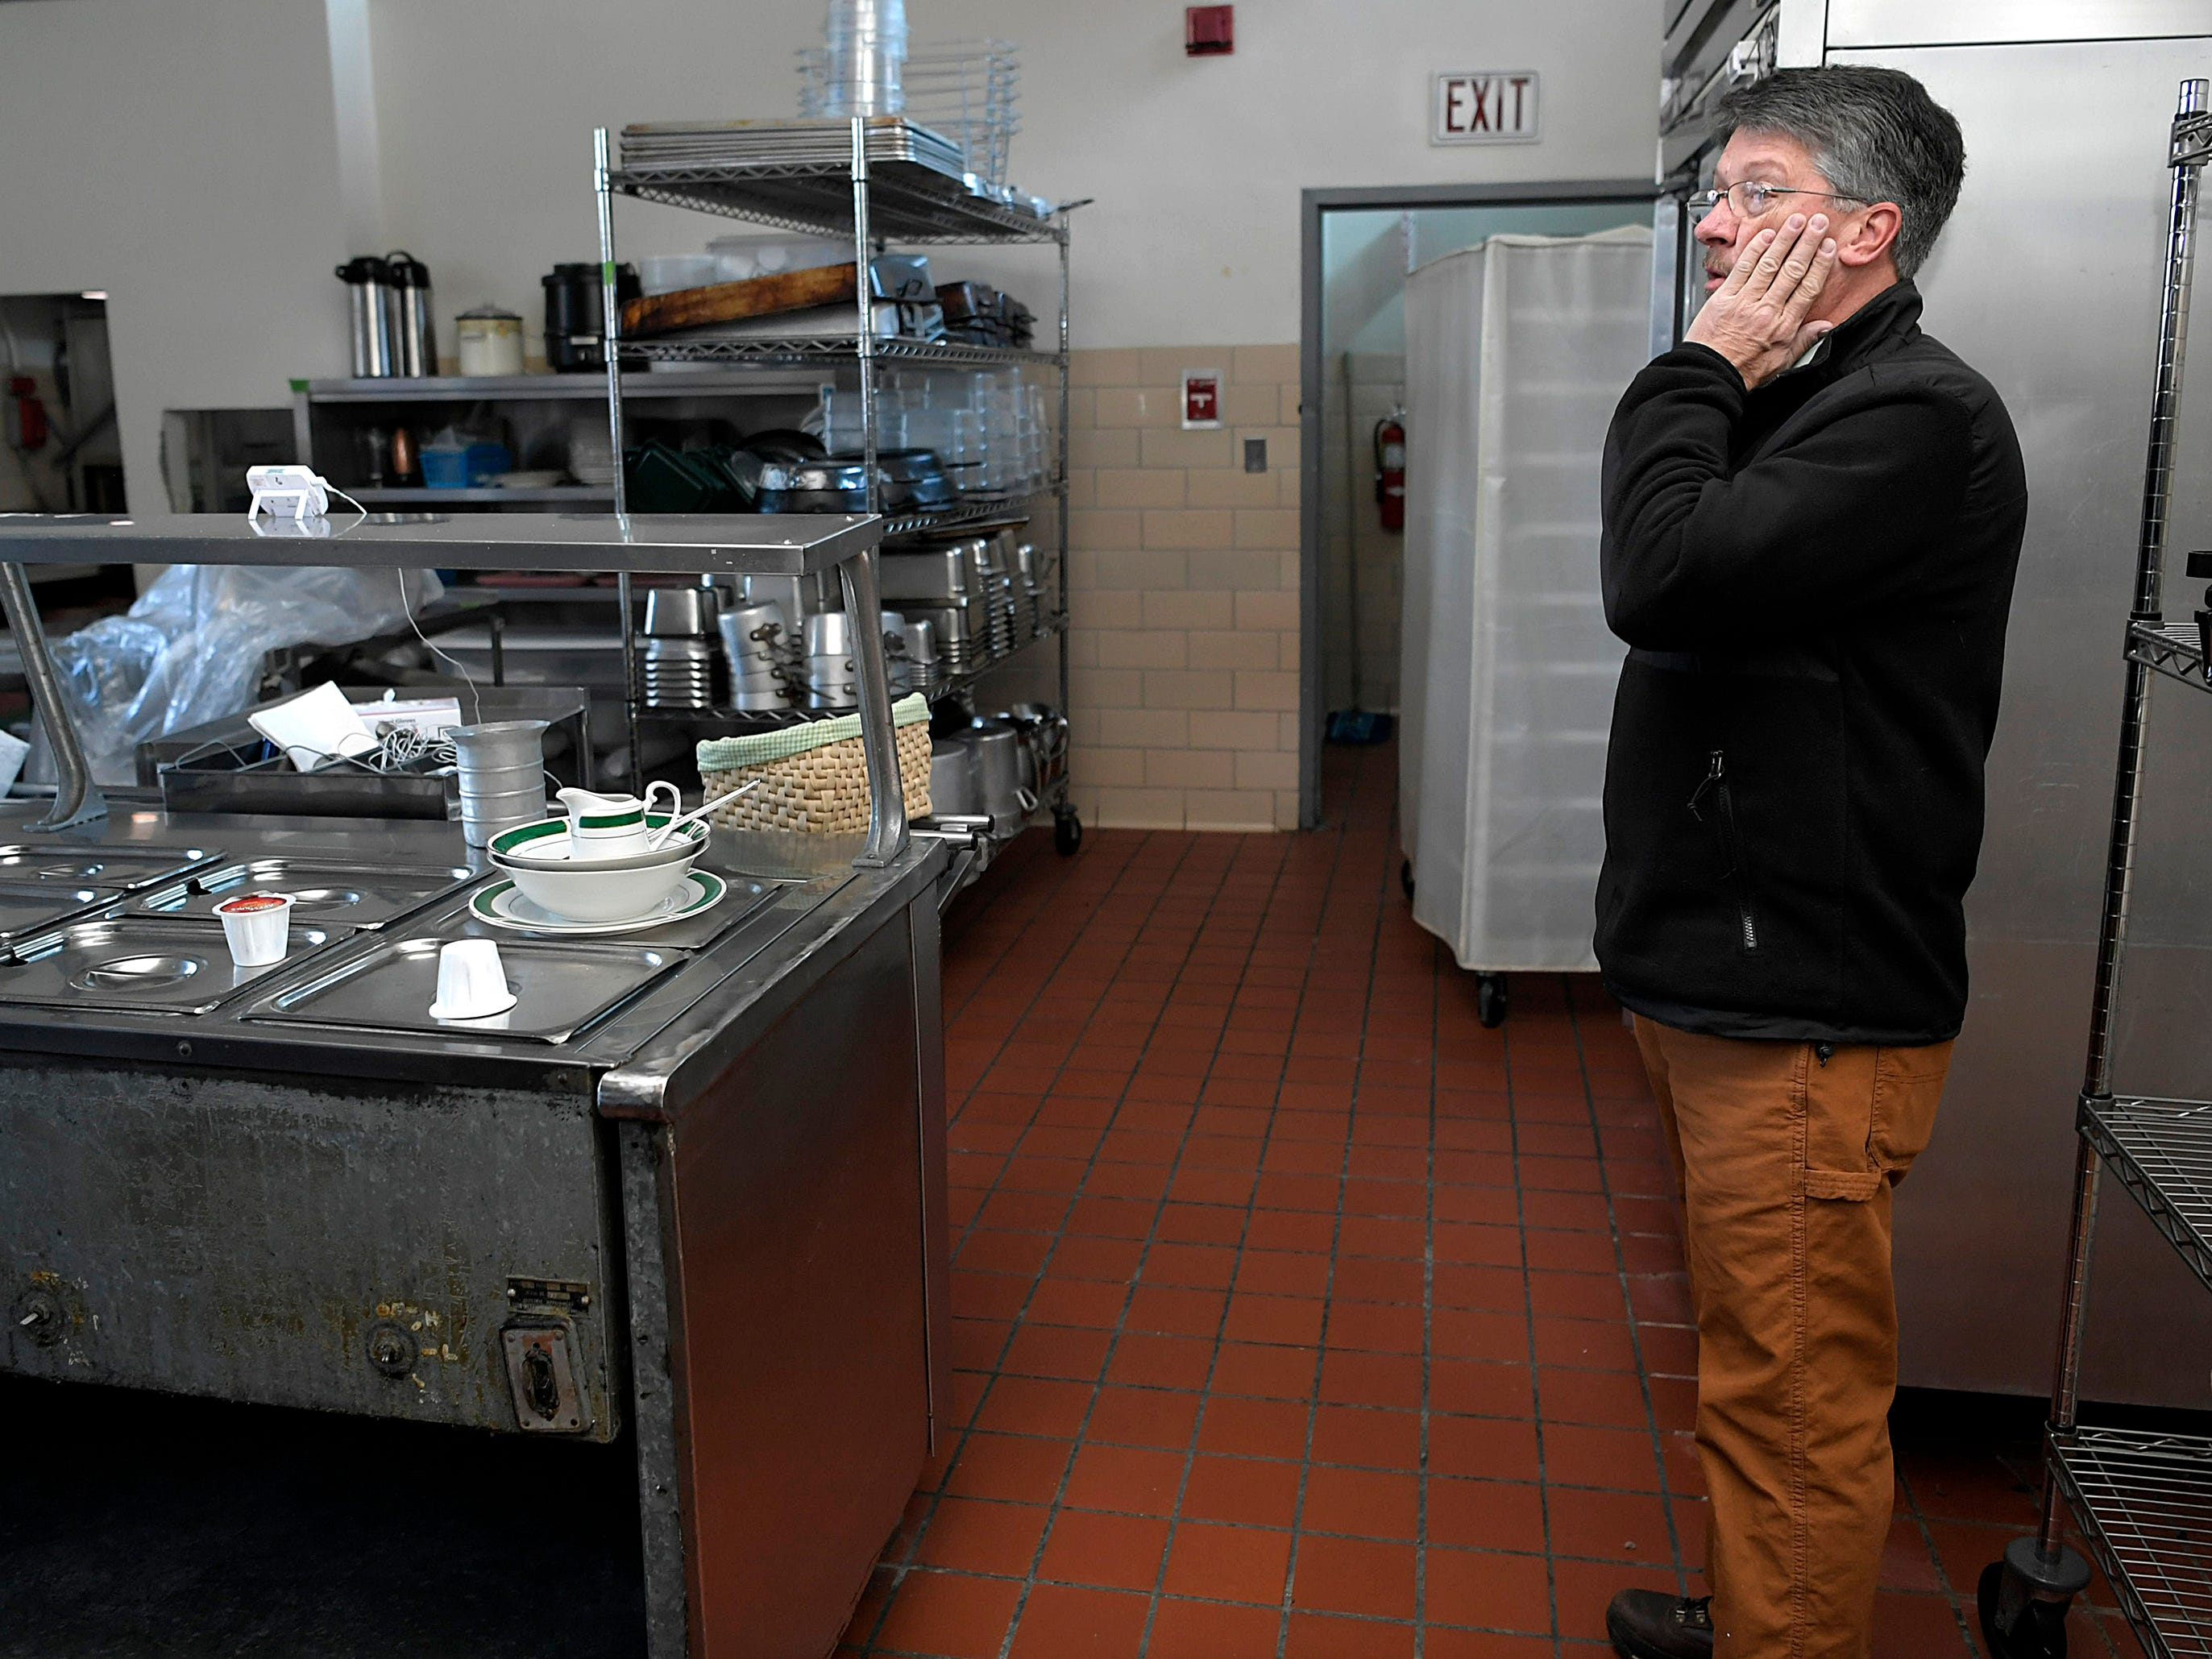 Mayor of Ducktown Mayor Doug Collins surveys the kitchen of Copper Basin Medical Center during a tour inside town's shuttered hospital in Ducktown, Tennessee on Dec. 5, 2018. Copper Basin Medical Center closed 15 months ago due to mounting debt.